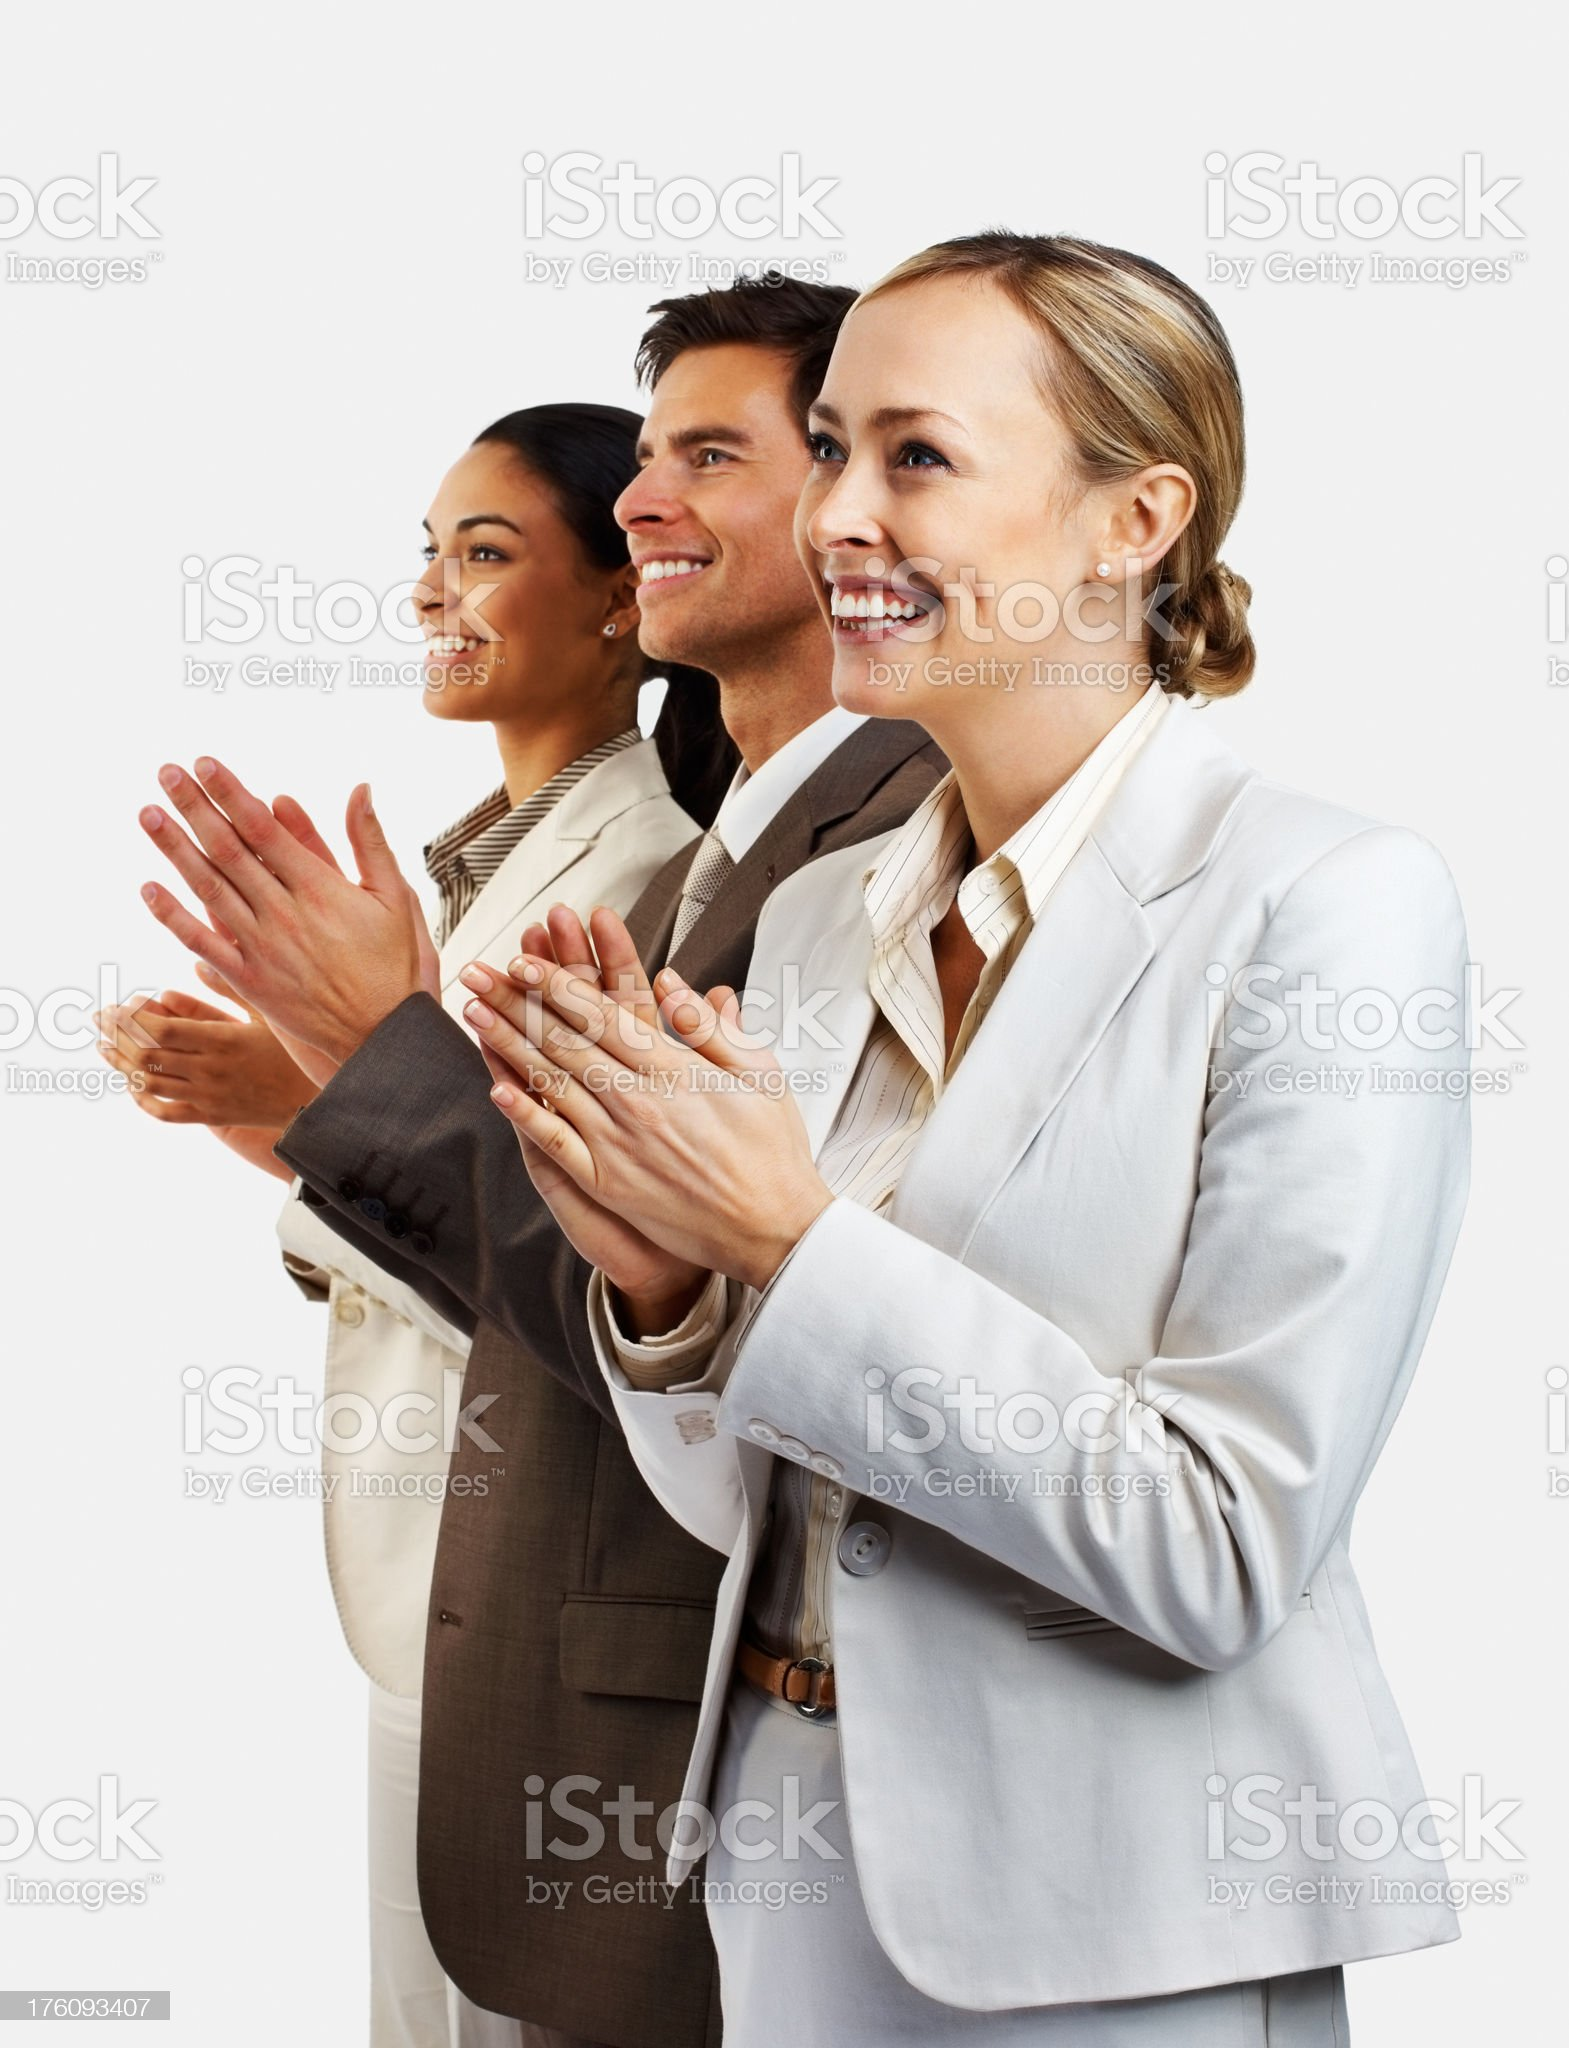 Business colleagues clapping hands royalty-free stock photo